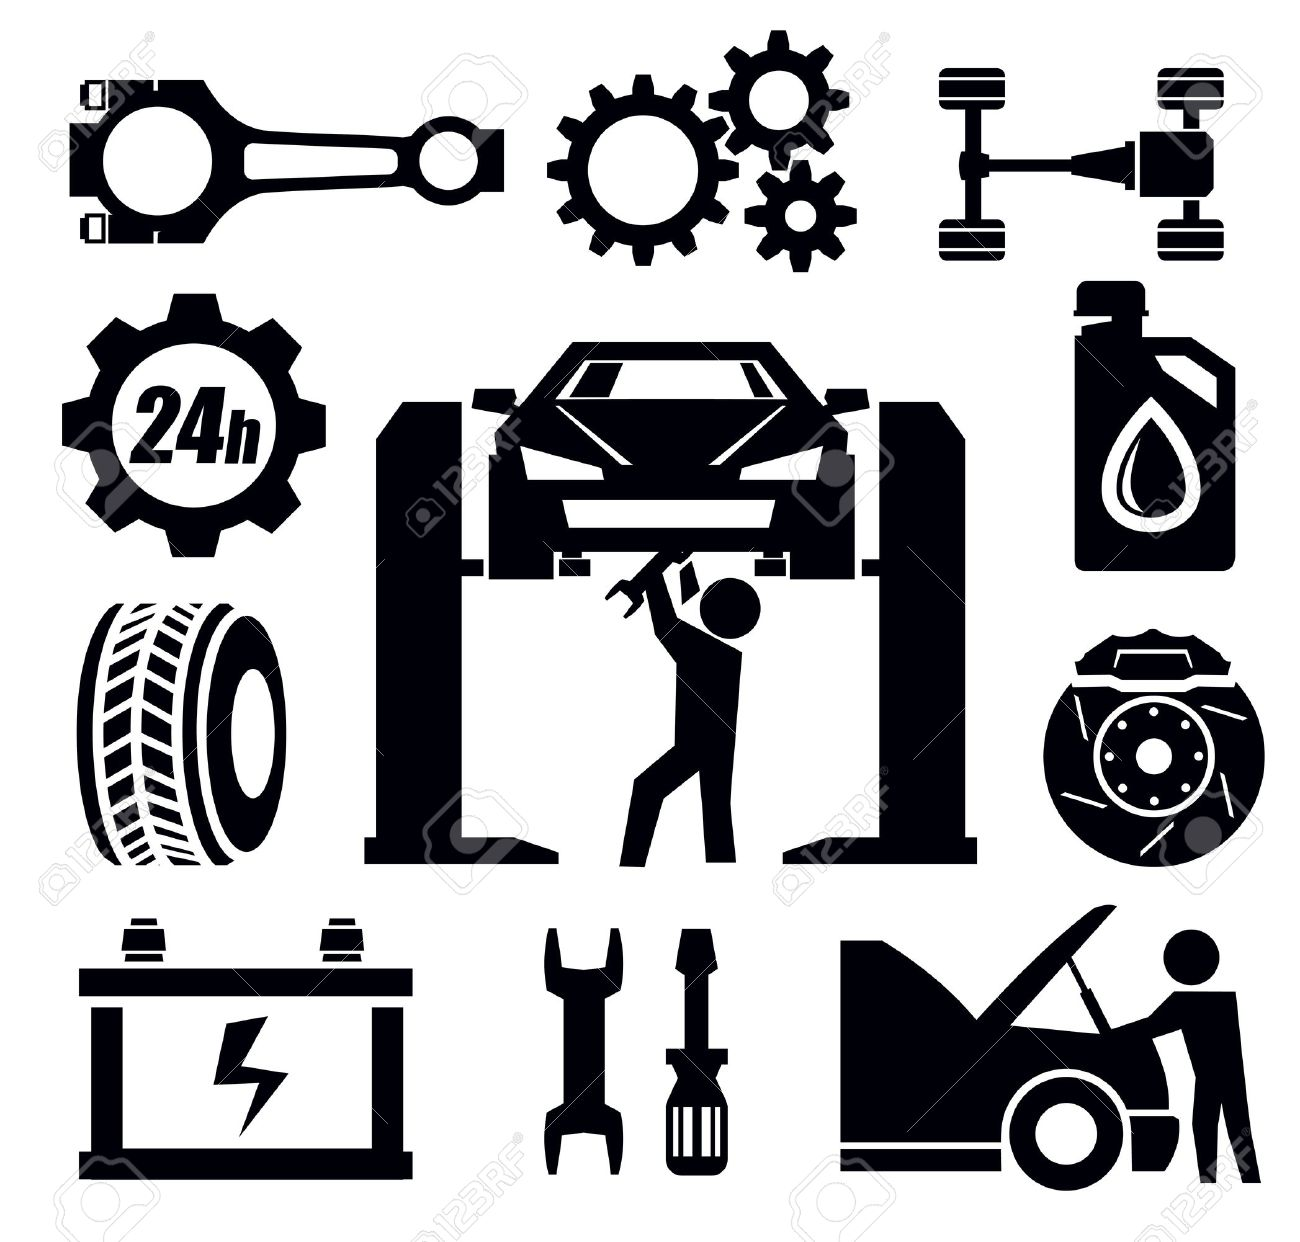 Auto Repair: Car Repair Icon-auto repair: car repair icon-4